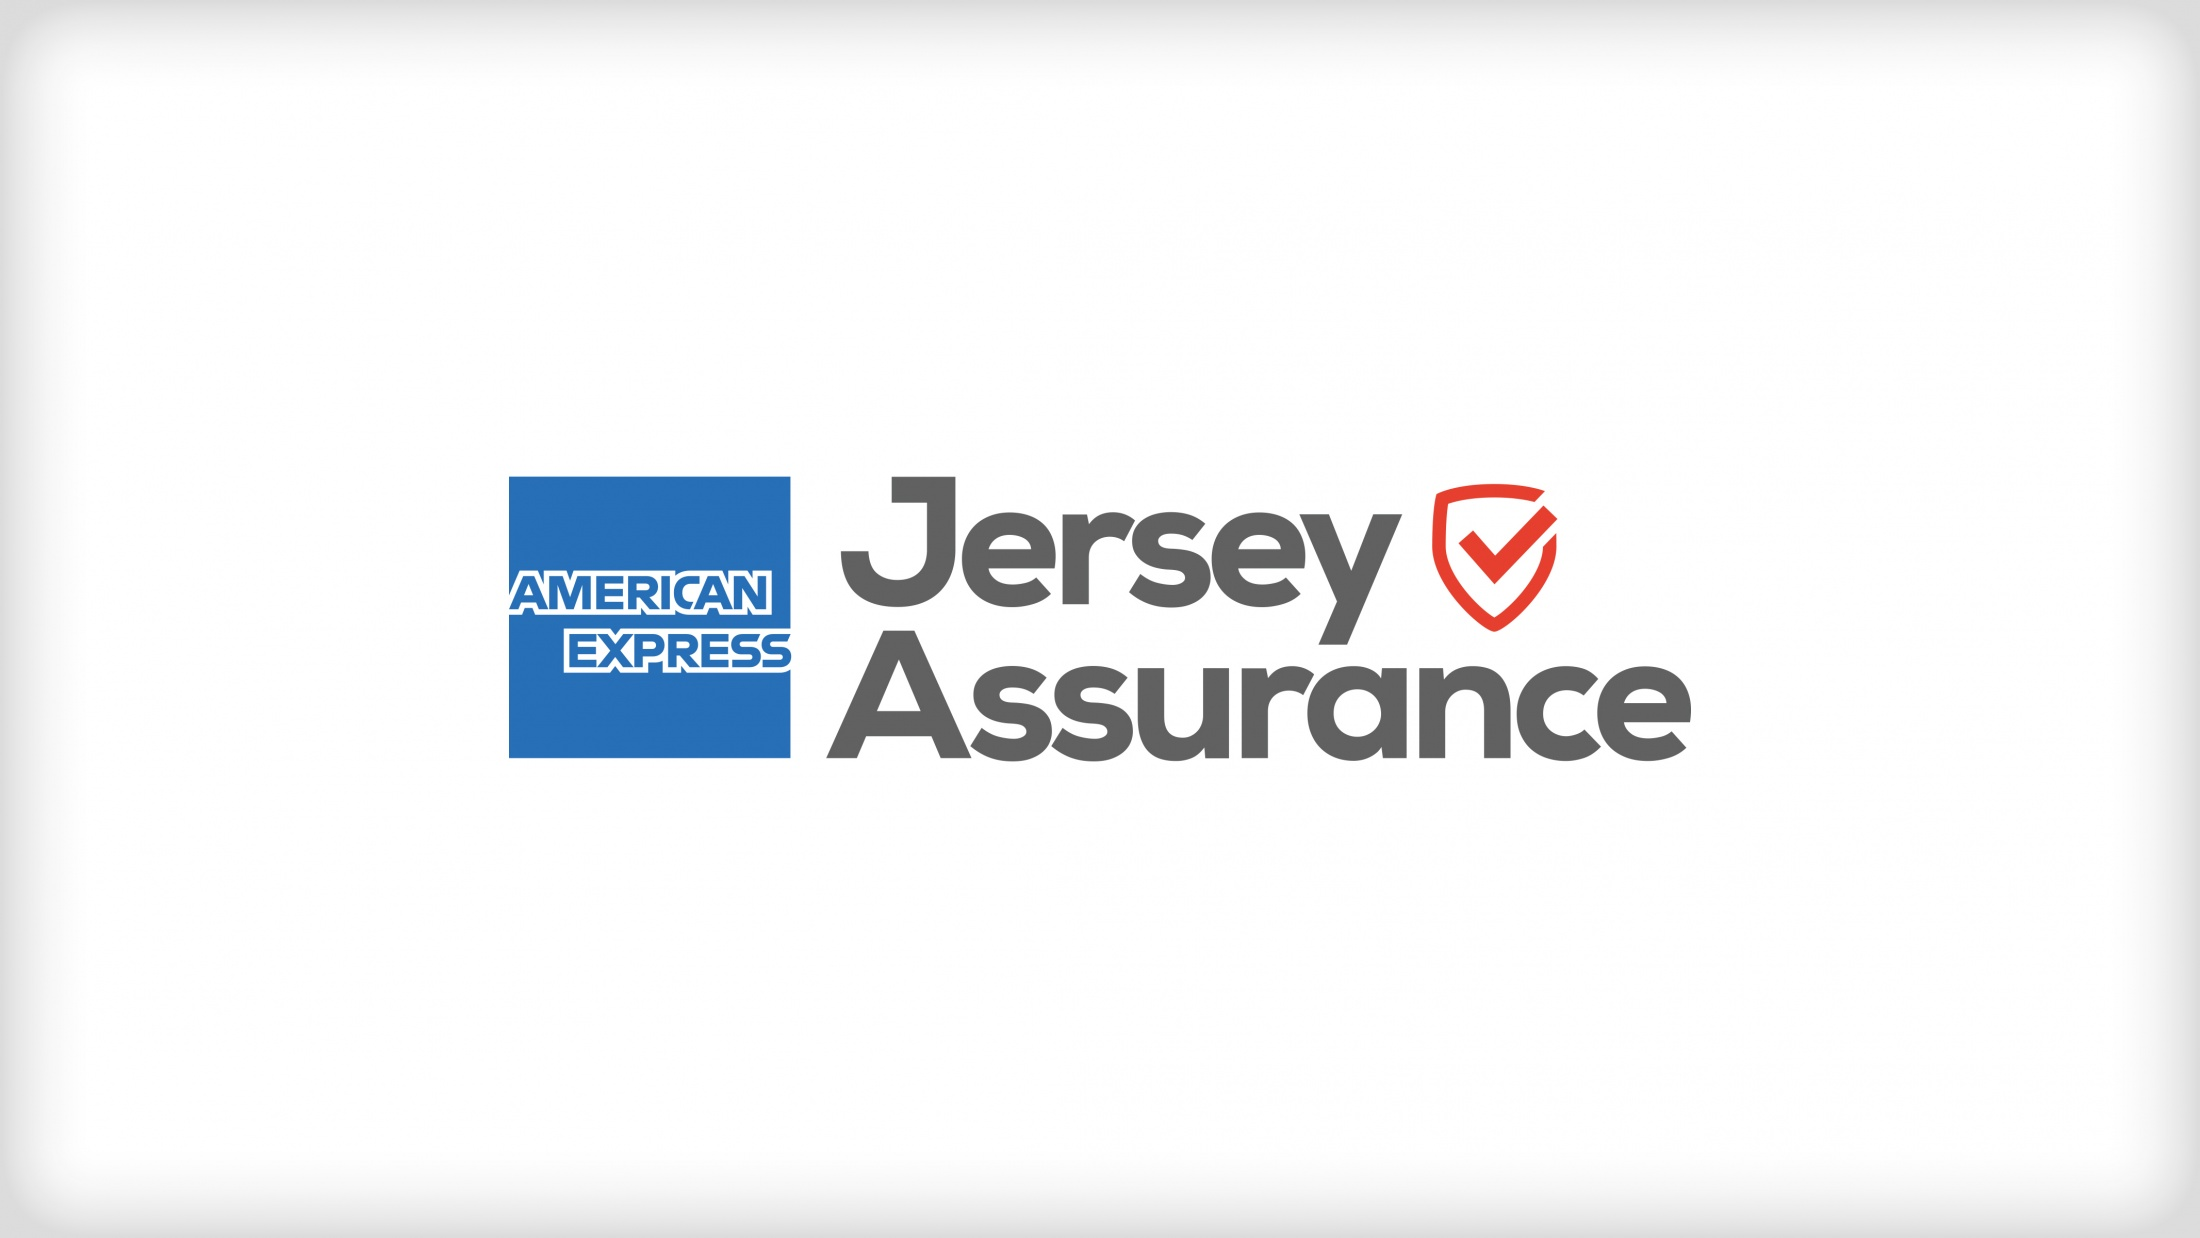 Image Media for American Express Jersey Assurance